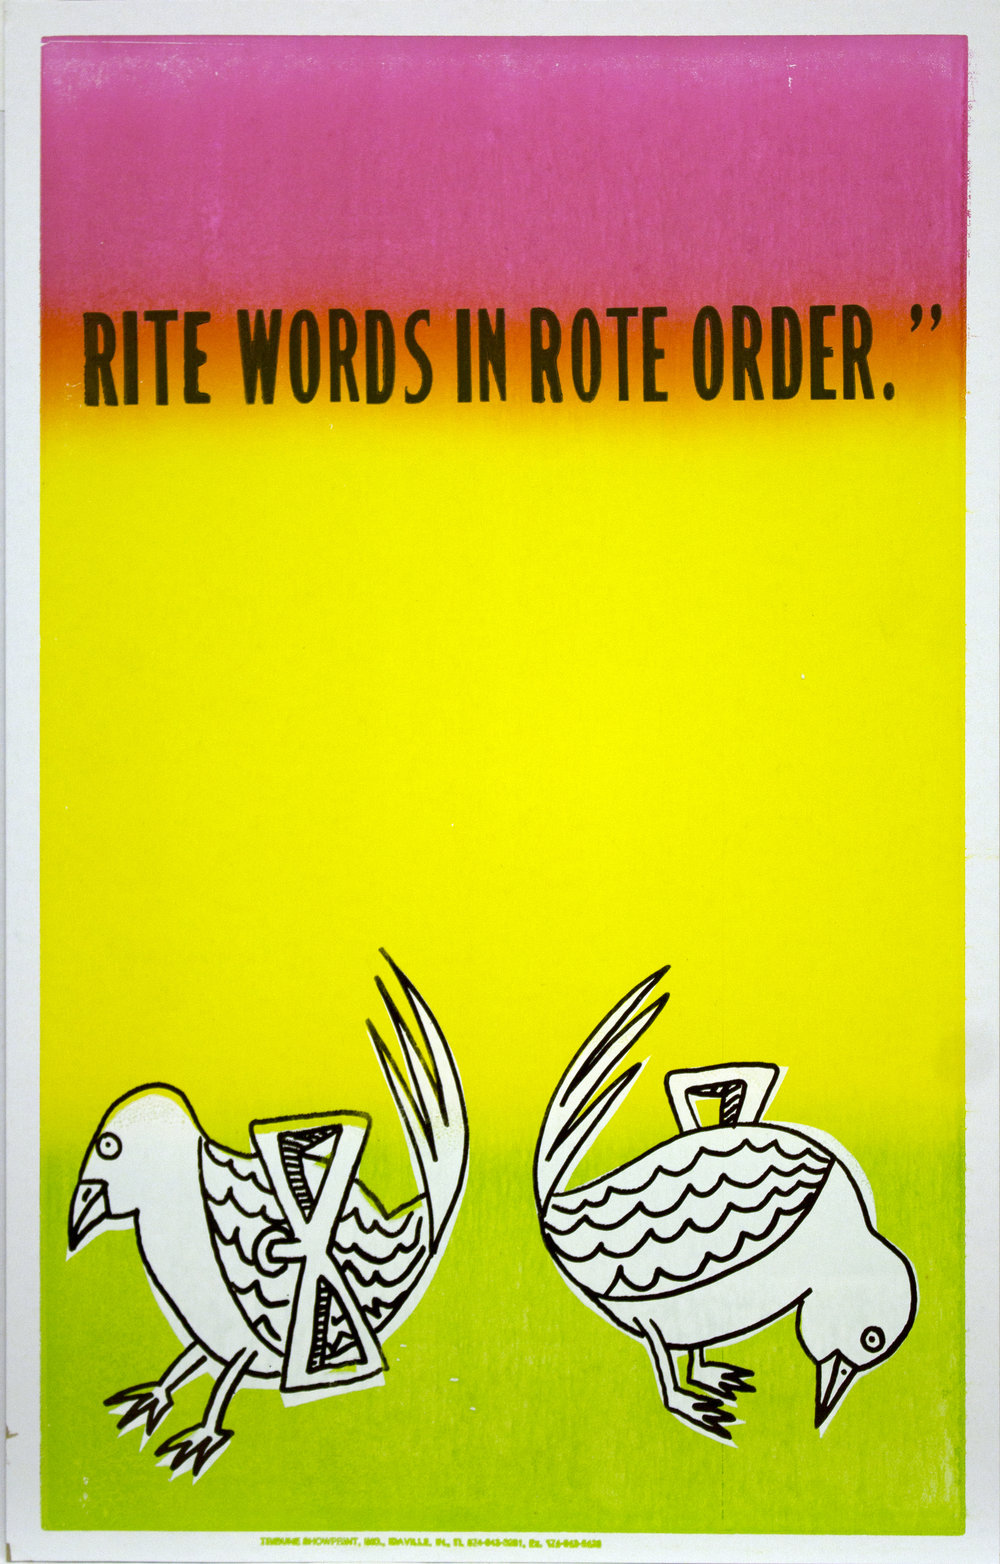 "Christopher Michlig and Jan Tumlir,  The Future of Writing 2: Peckers (RITE WORDS IN ROTE ORDER"") , 2017. Silkscreen and letterpress on poster board, 14 x 22 inches"